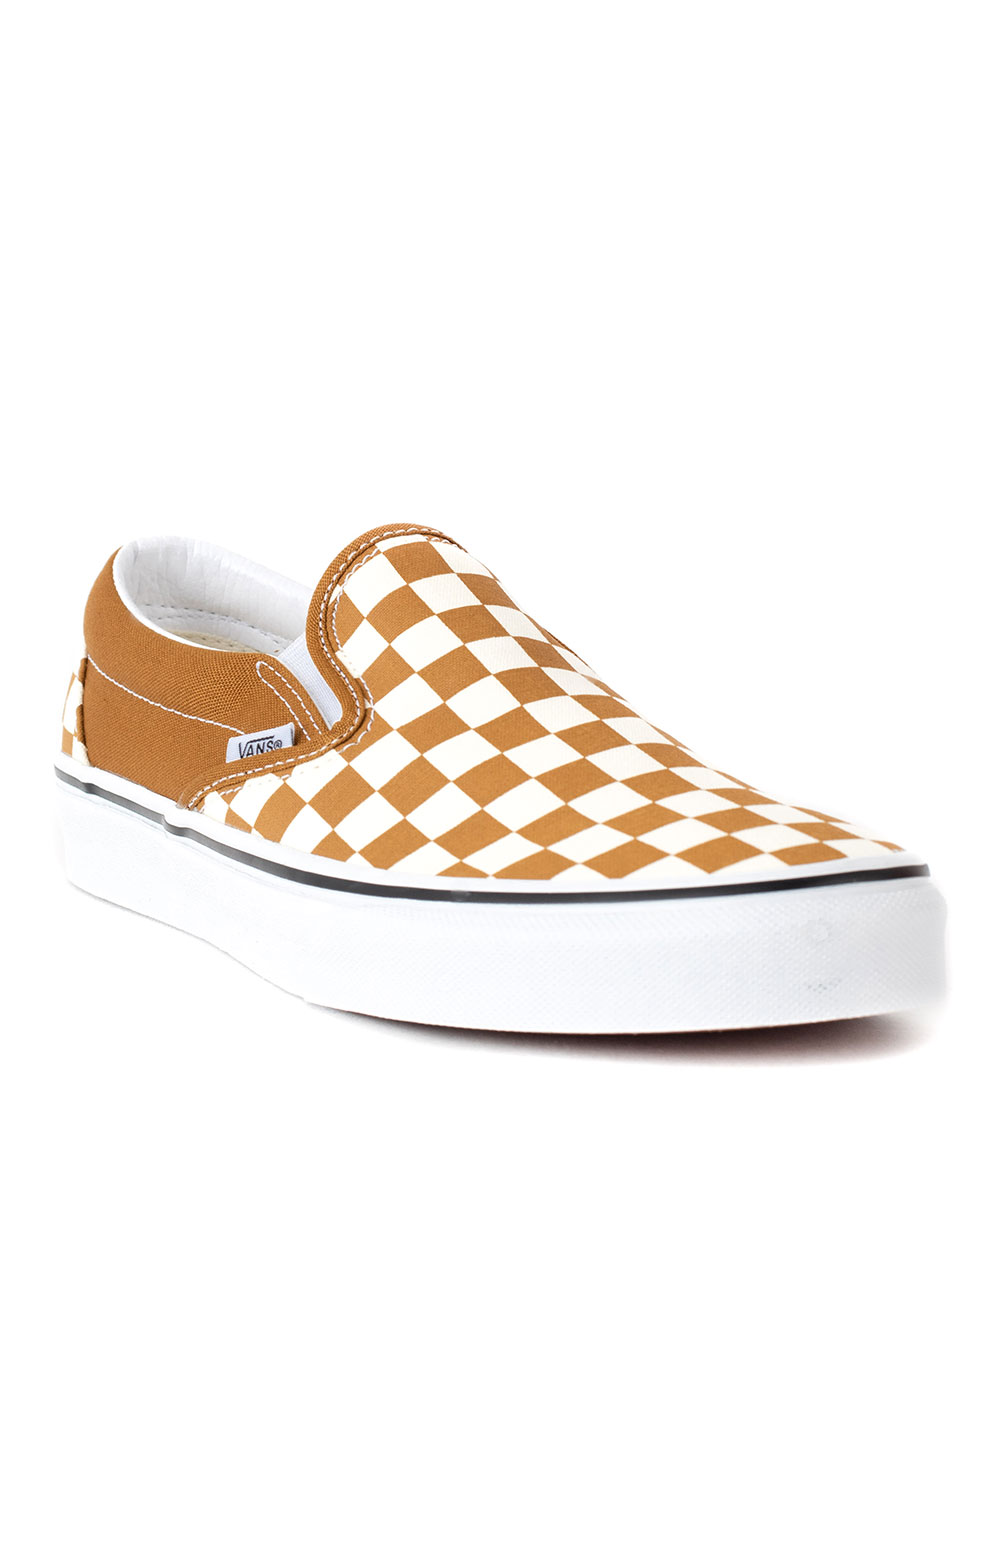 (3TB9HN) Checkerboard Classic Slip-On Shoes - Golden Brown  3